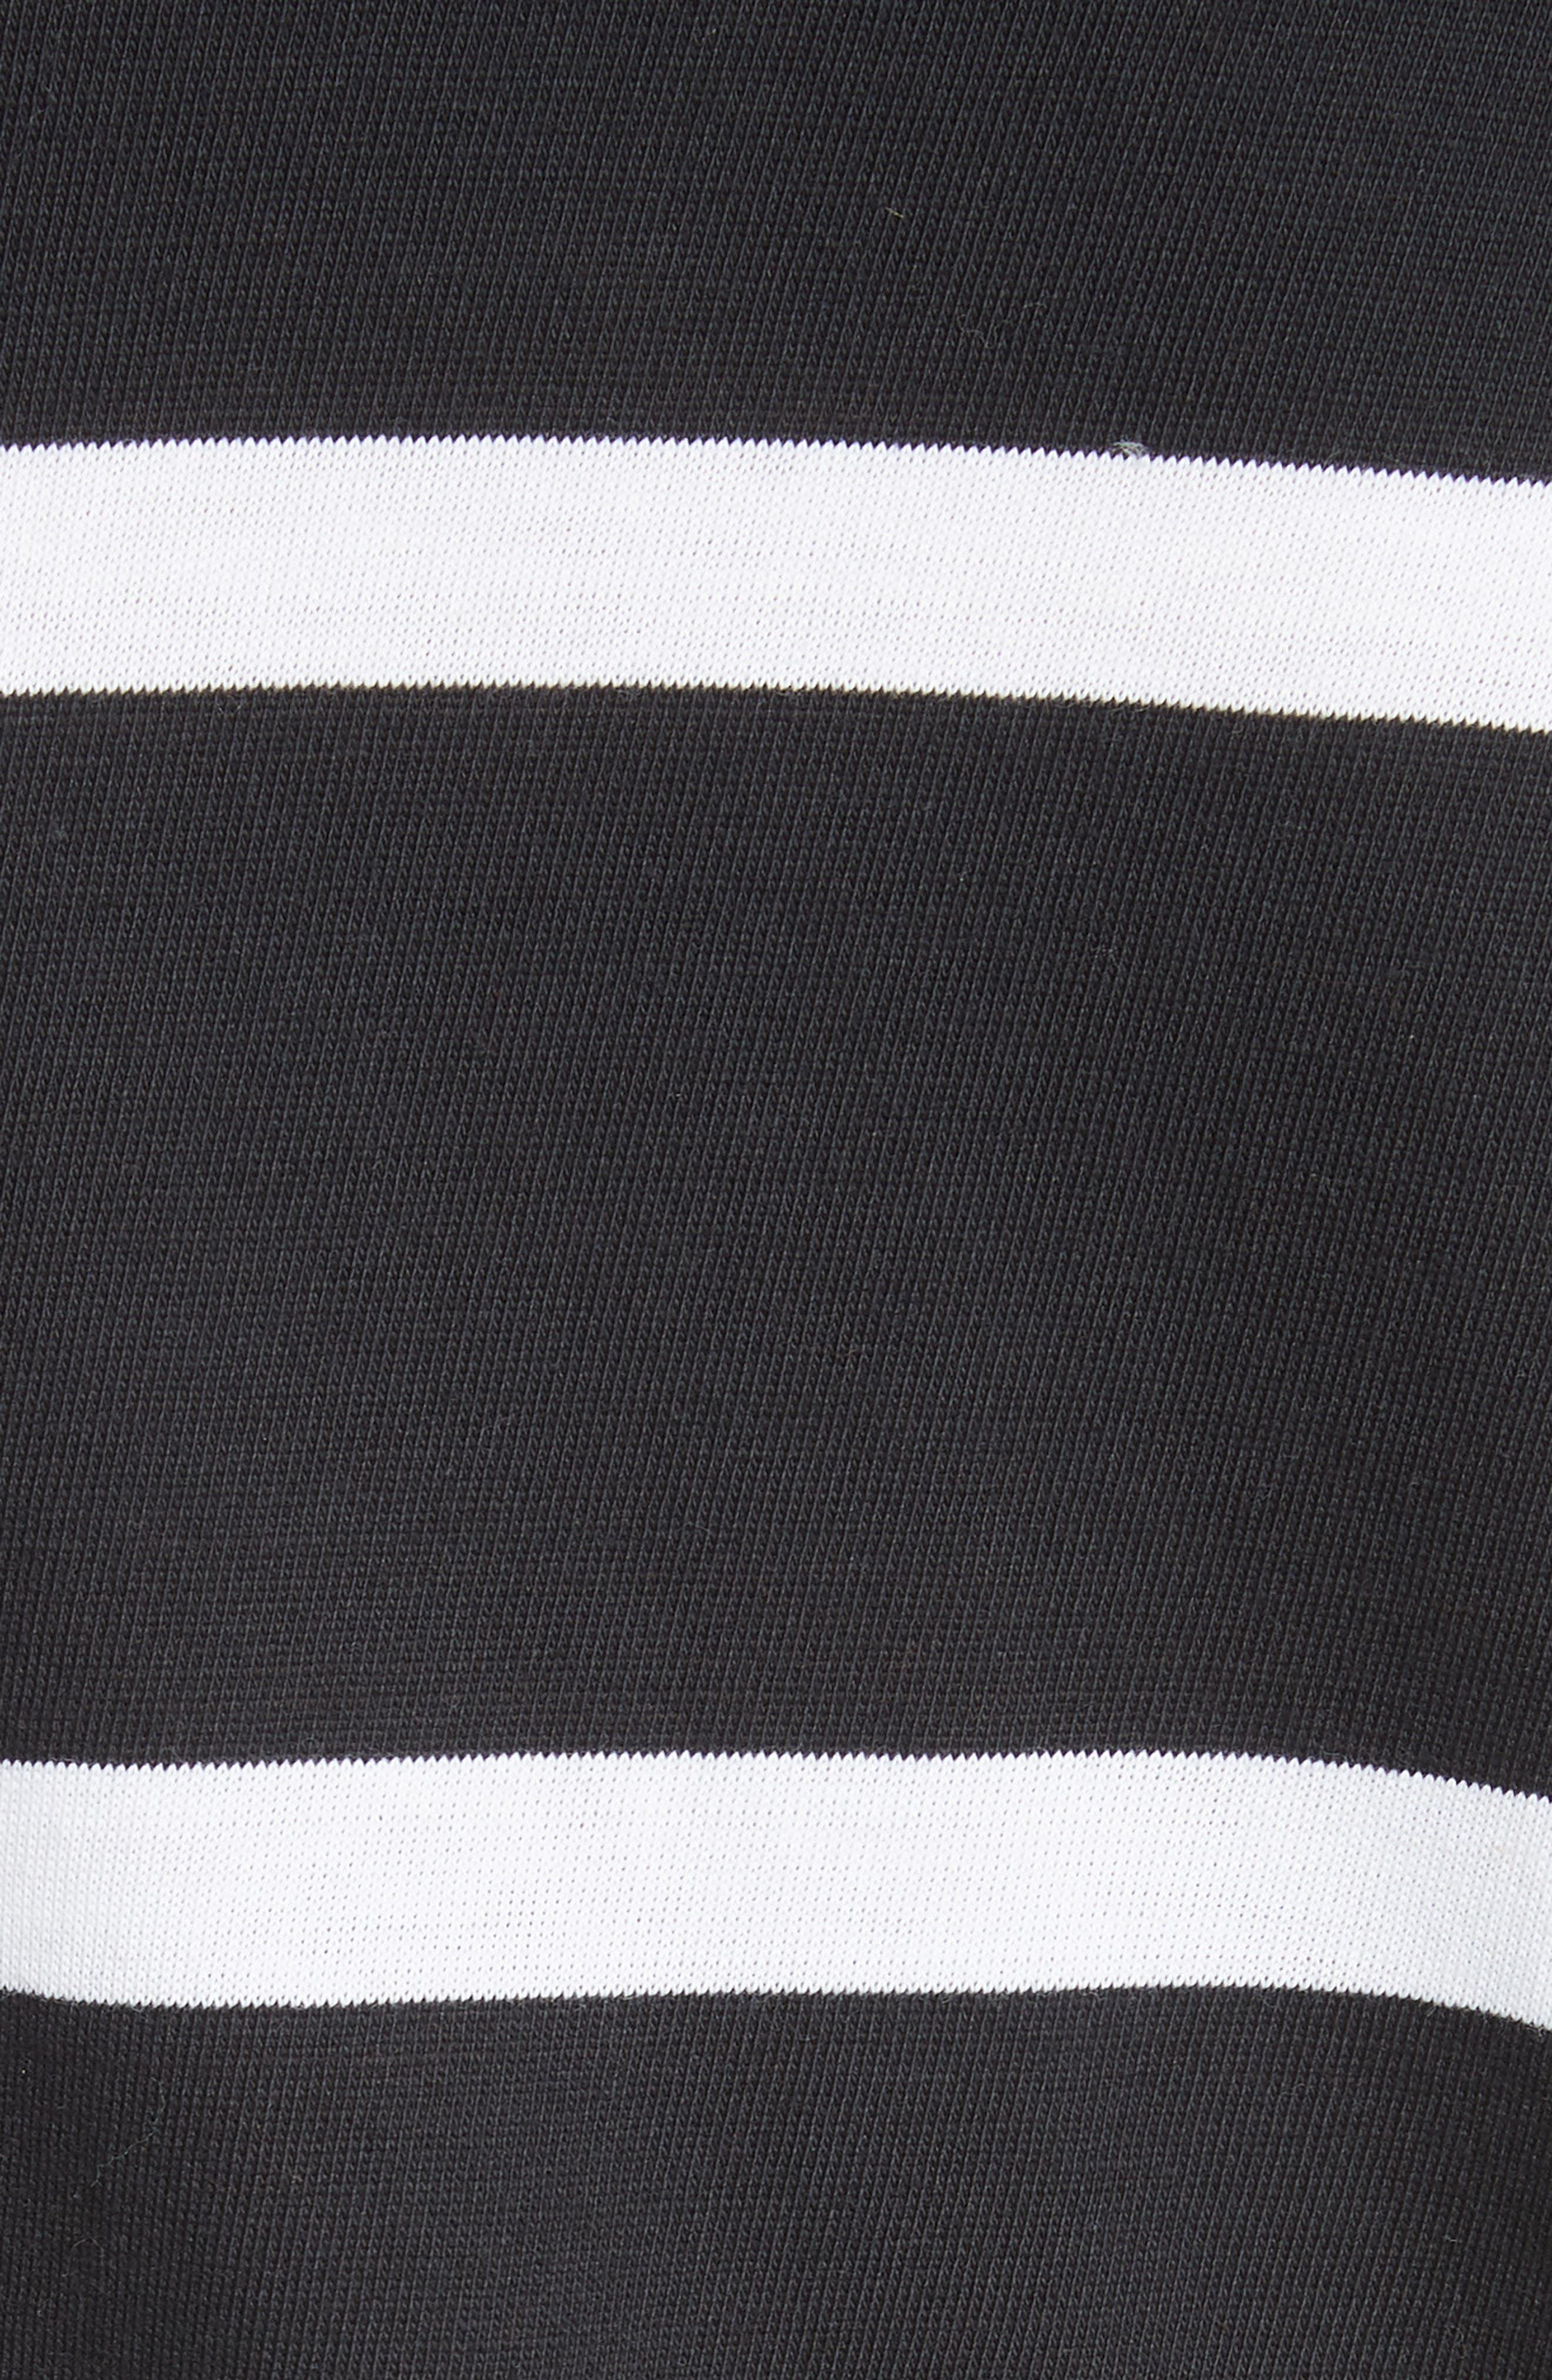 Upstate Stripe Tee,                             Alternate thumbnail 5, color,                             019